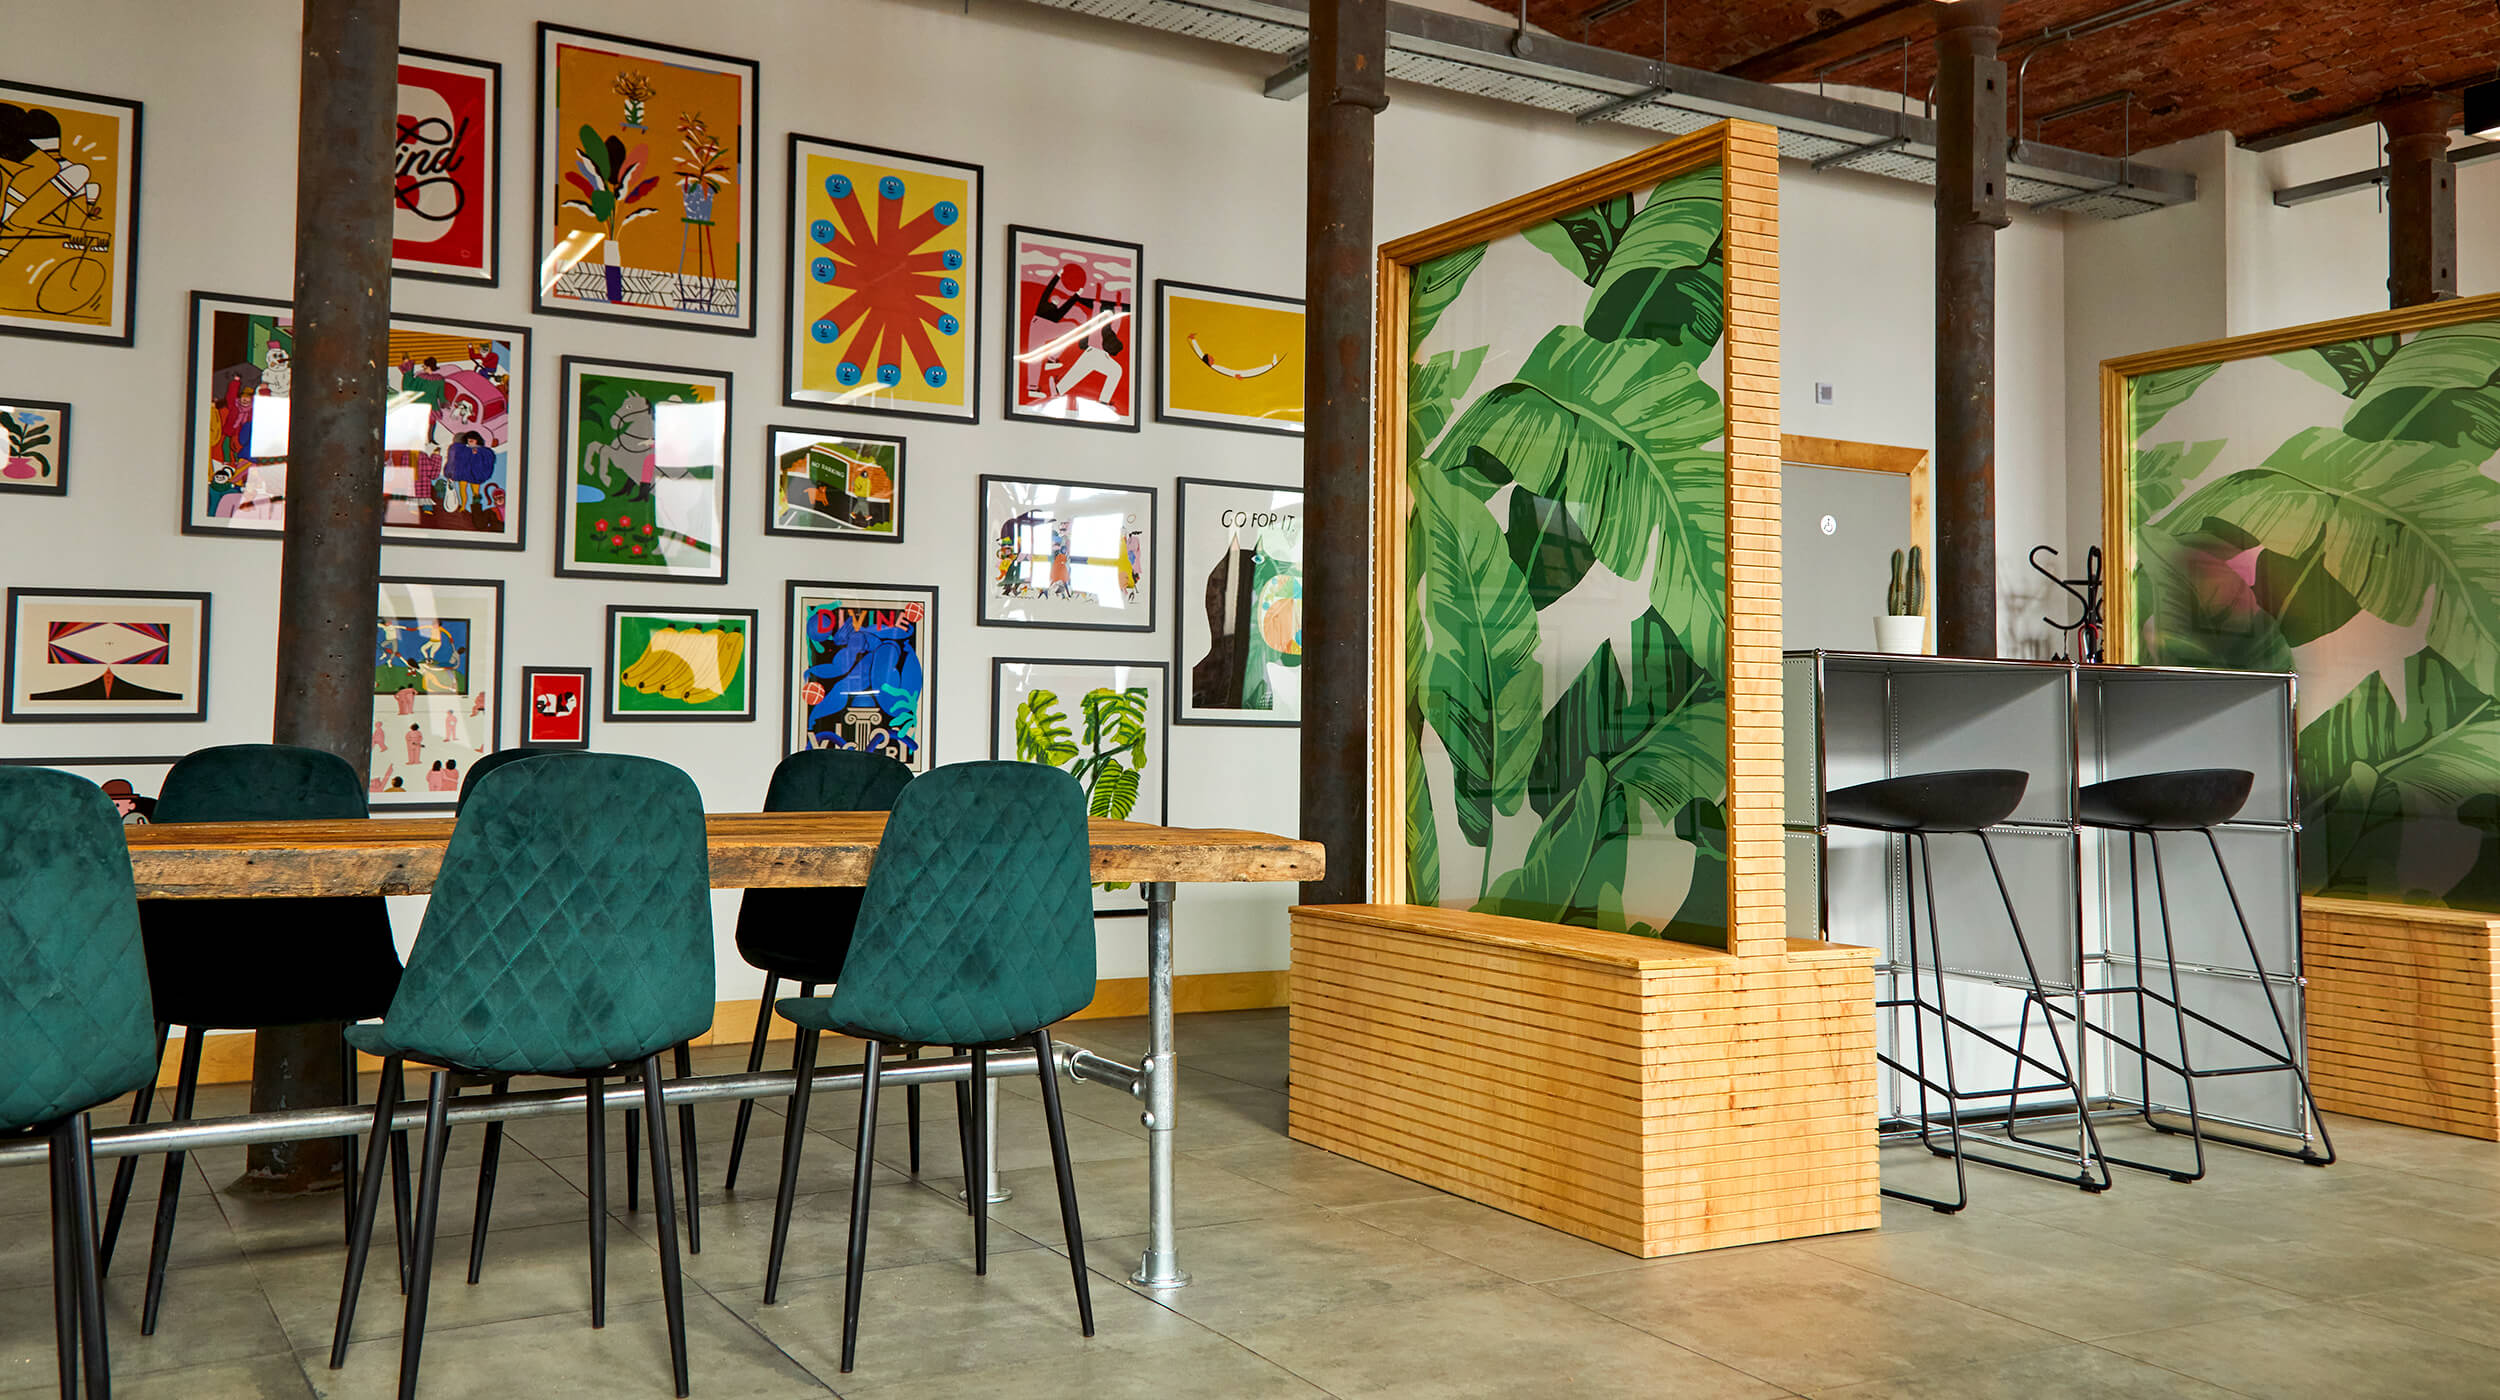 Workspace and artwork in the shared workspace at Castleton Mill